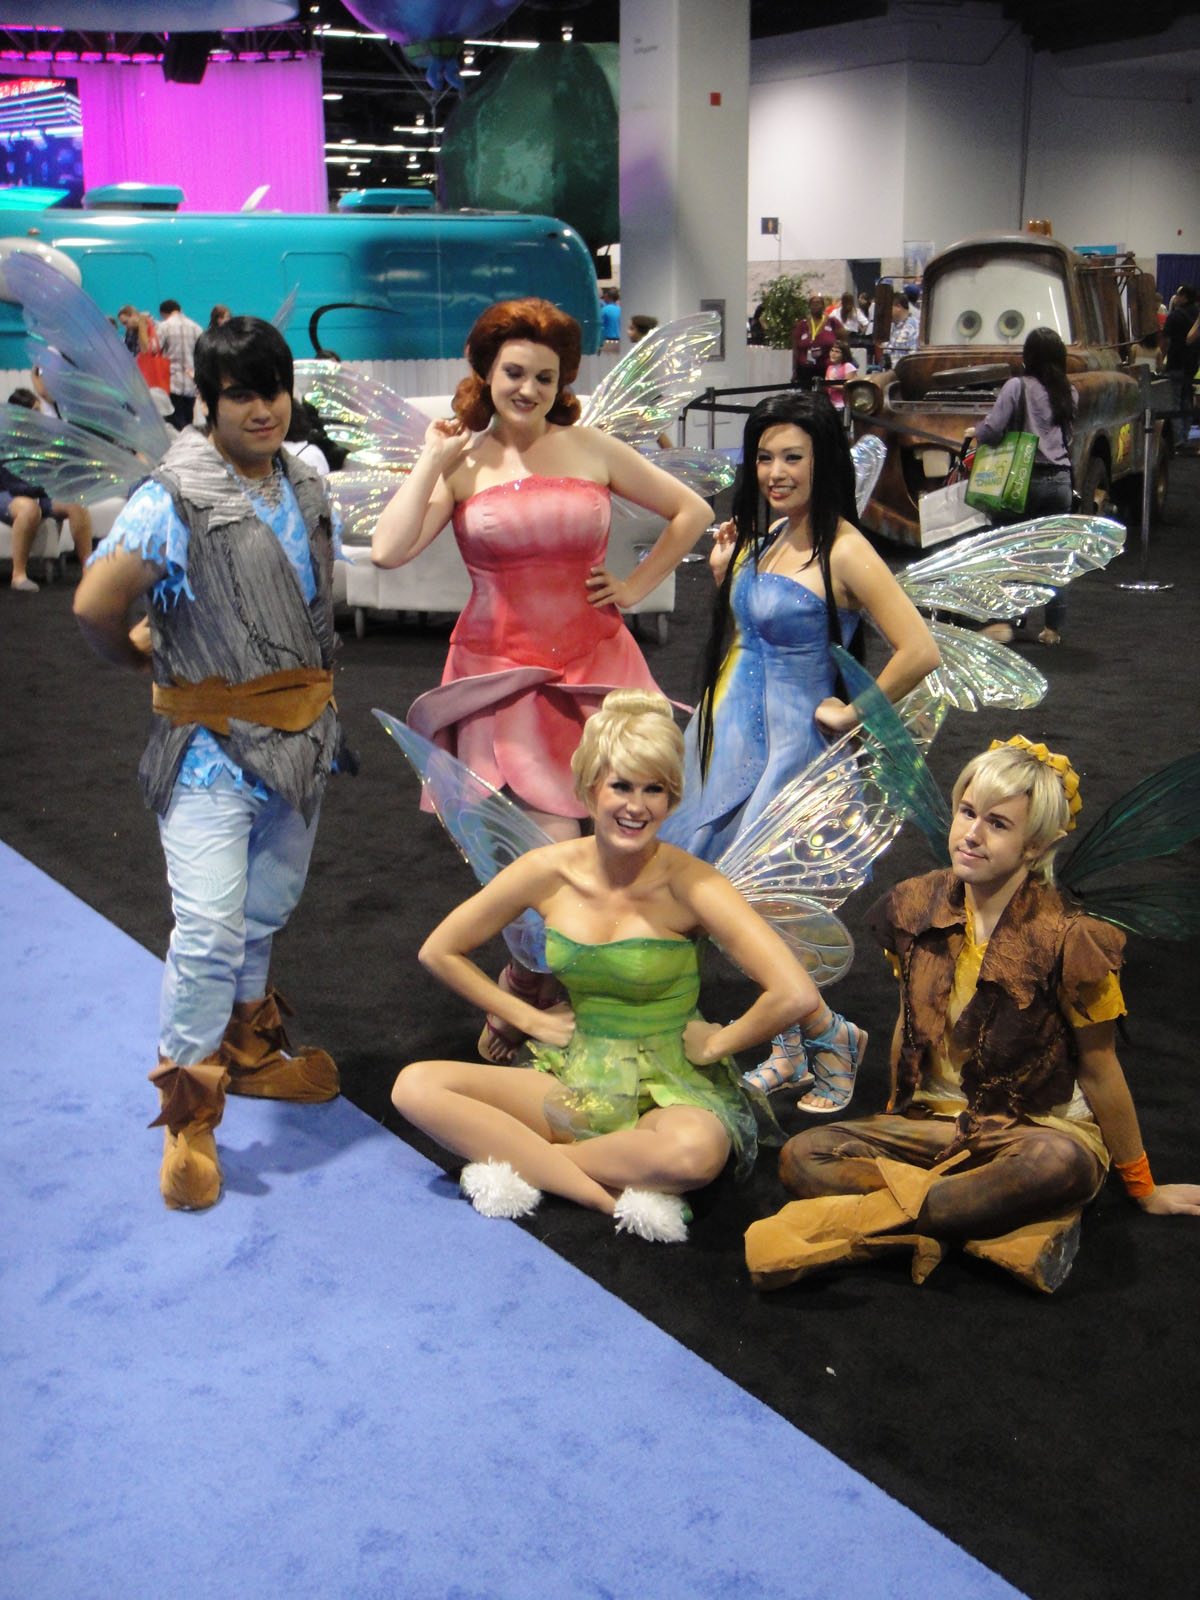 By The Conmunity - Pop Culture Geek from Los Angeles, CA, USA (D23 Expo 2011 - a bunch of fairies) [CC BY 2.0 (https://creativecommons.org/licenses/by/2.0)], via Wikimedia Commons